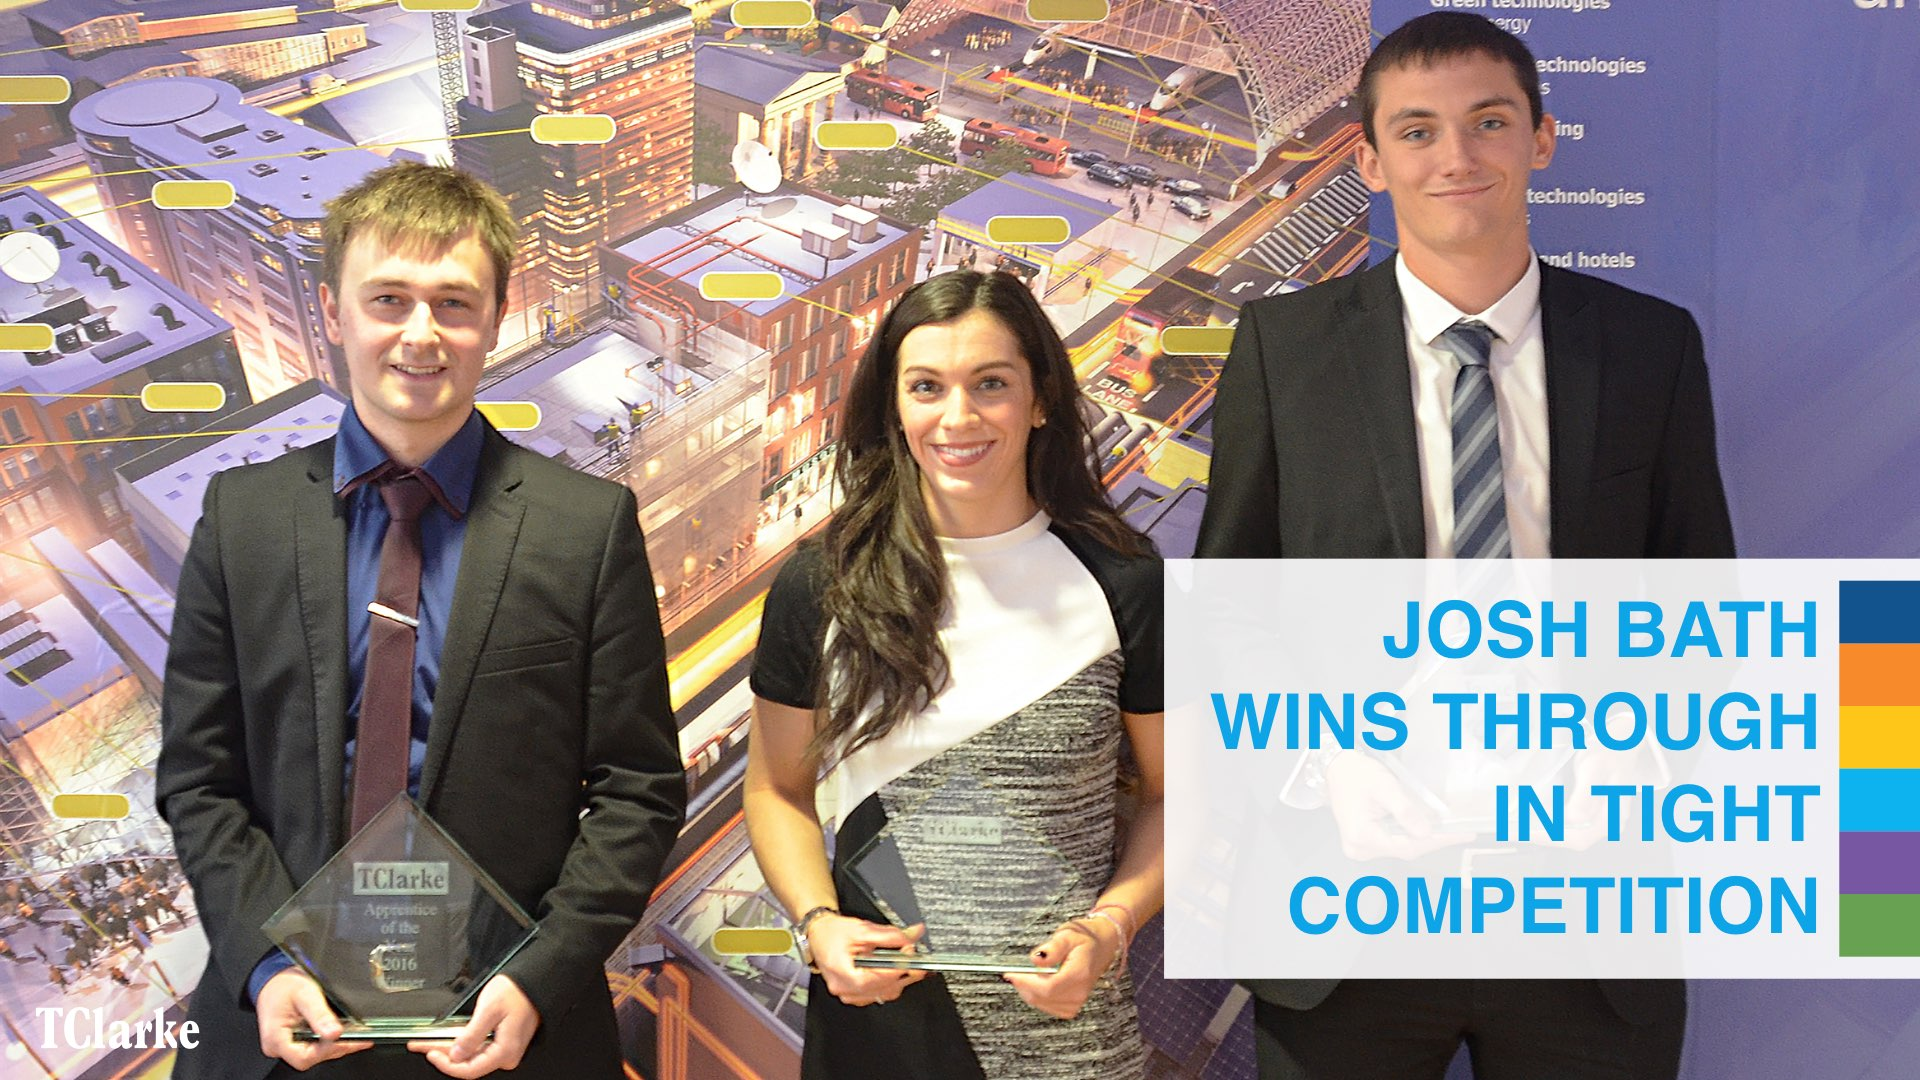 TClarke board congratulates Josh Bath - our Apprentice of the Year